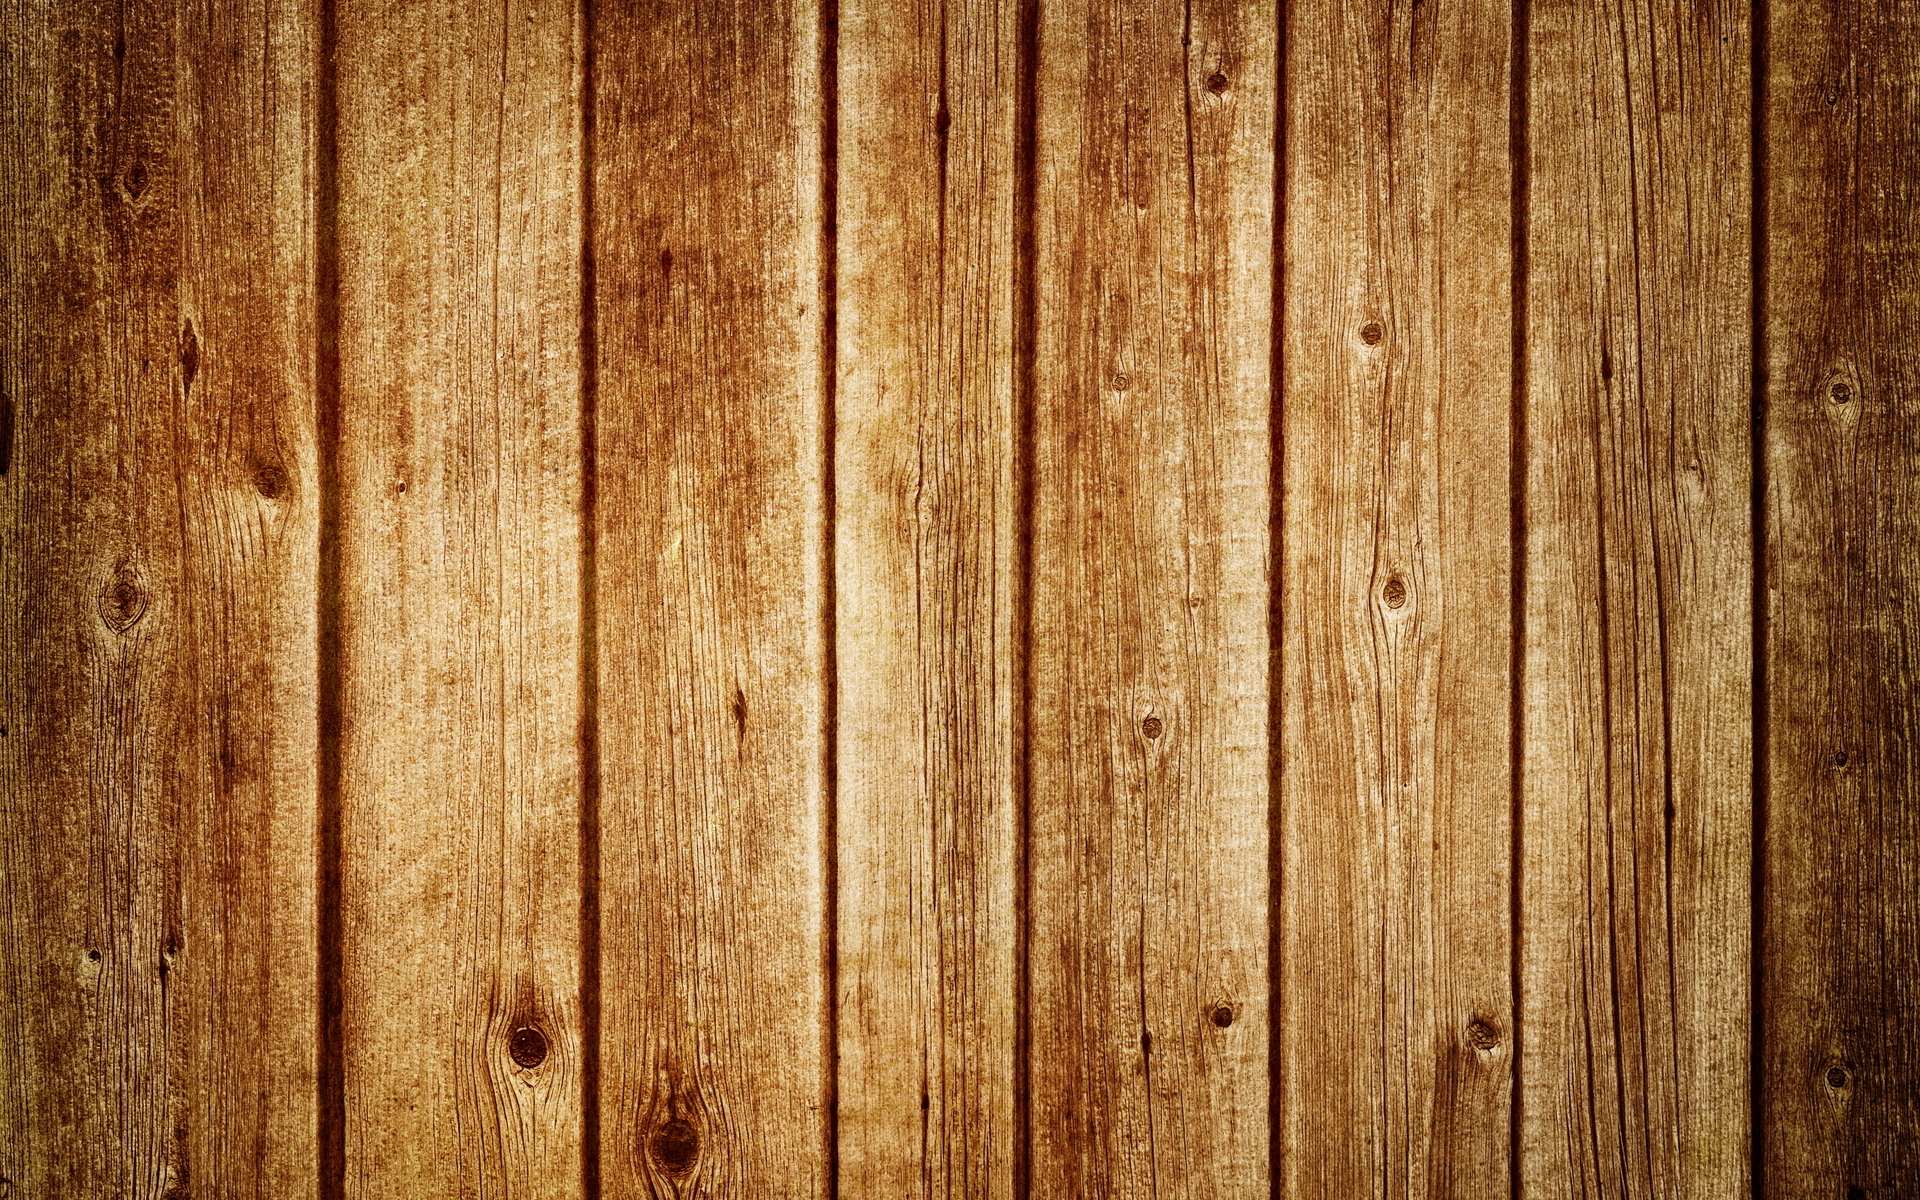 Hd wood background wallpapersafari Wood architecture definition